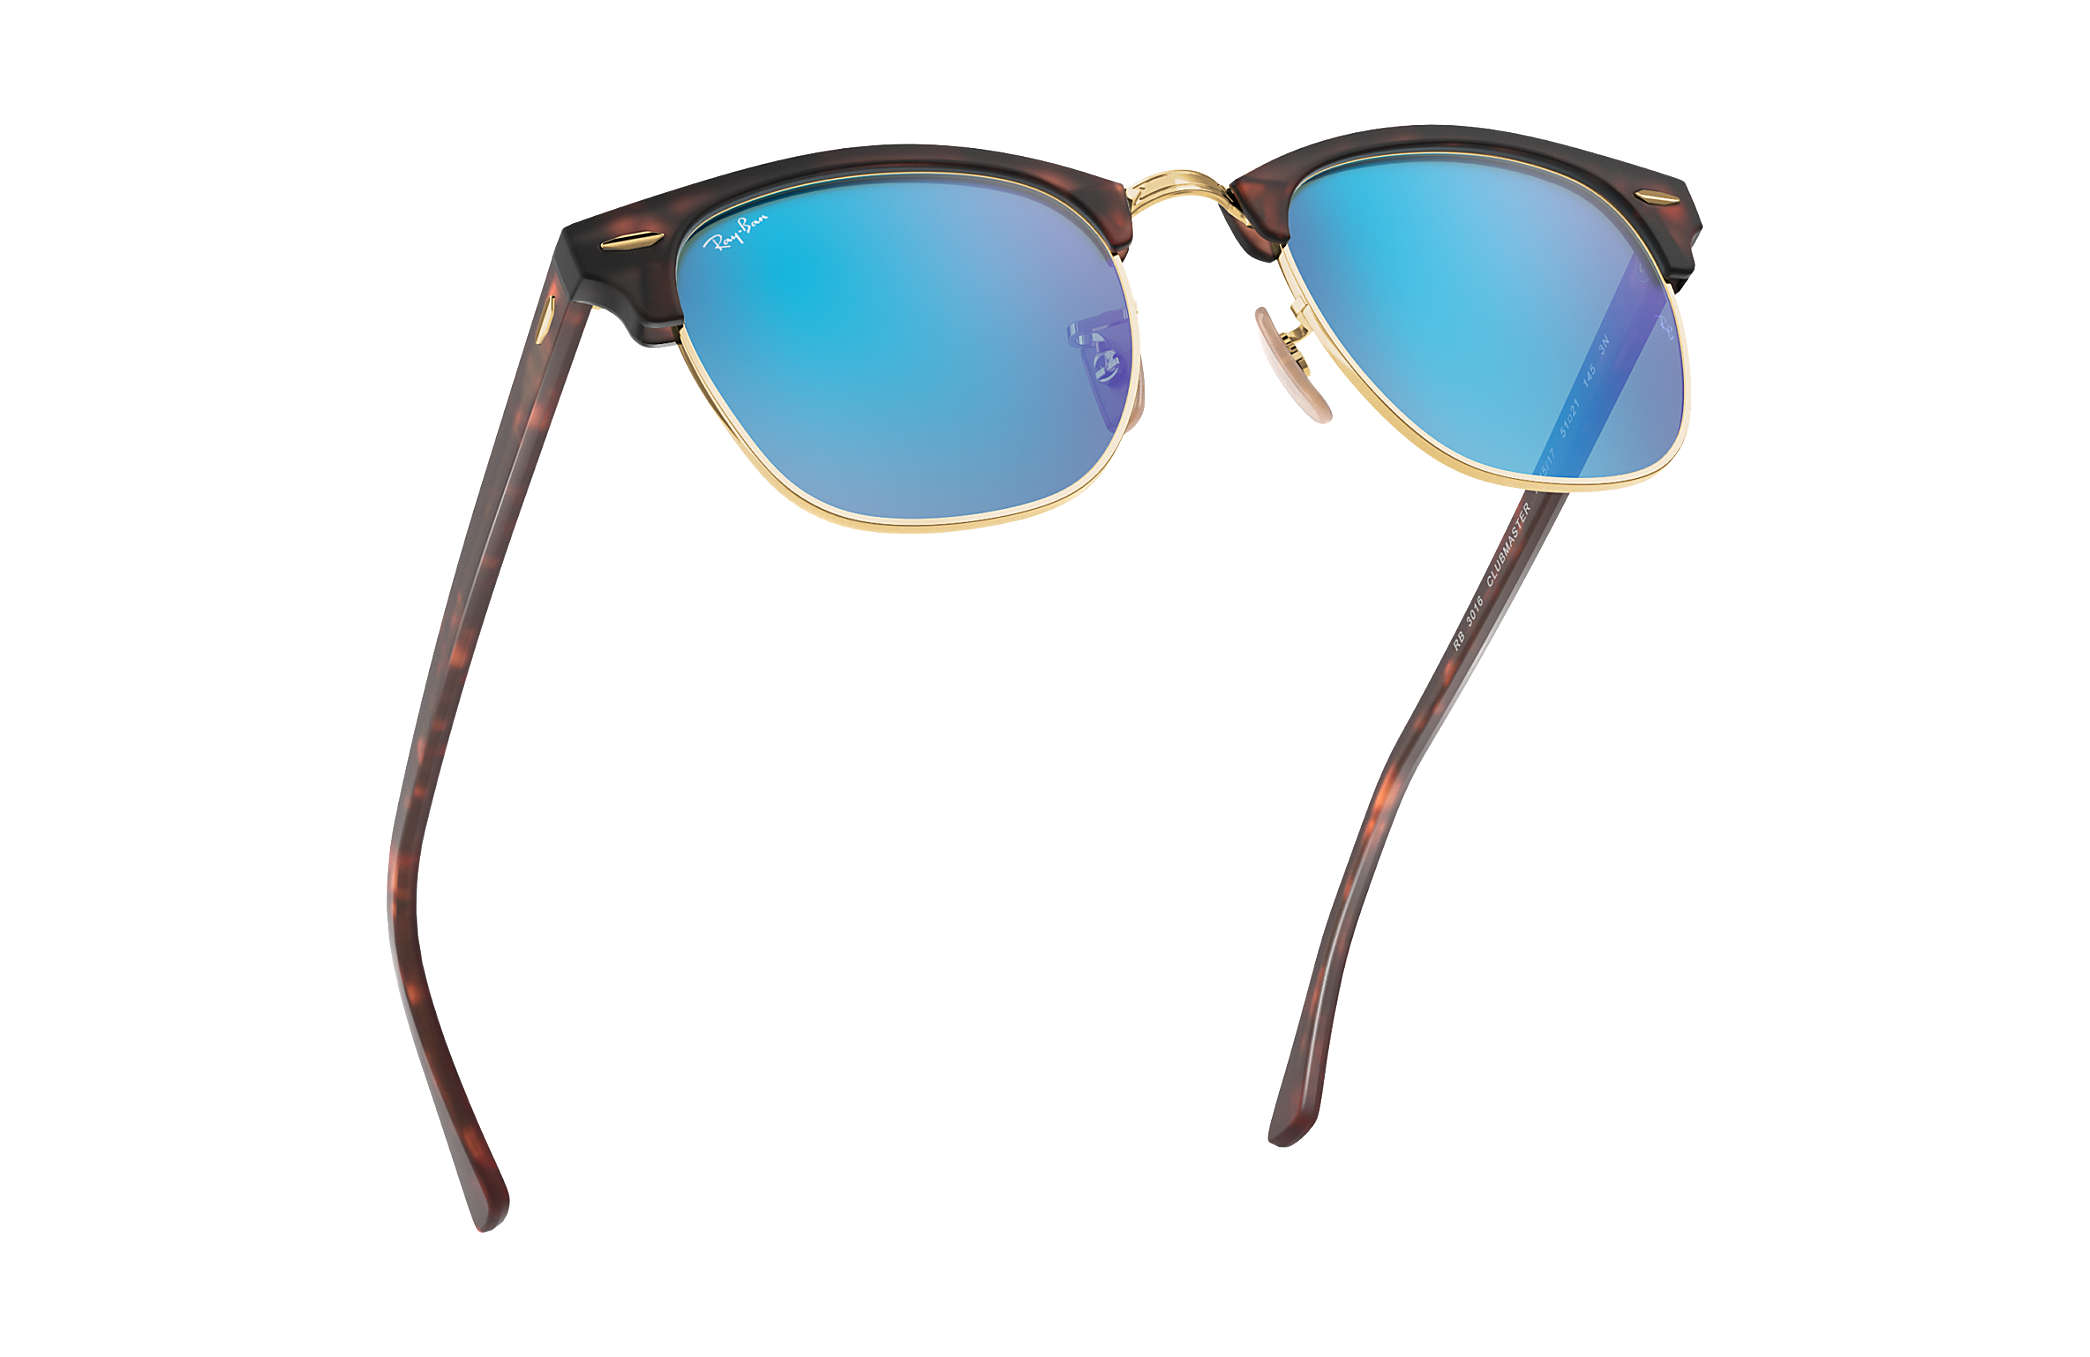 09f2ef44a03 Ray-Ban Clubmaster Flash Lenses RB3016 Tortoise - Acetate - Blue ...